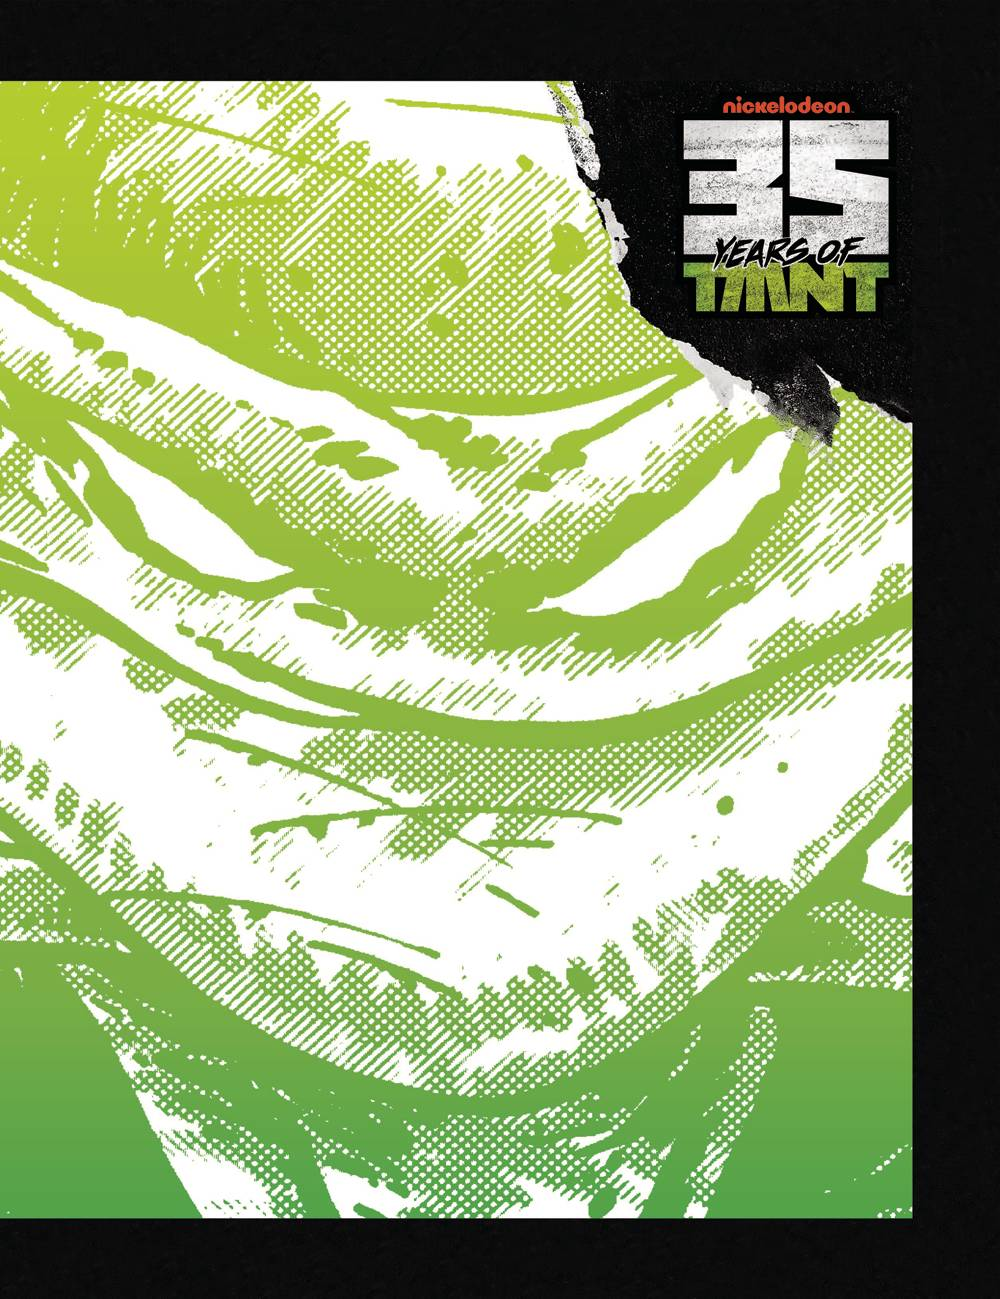 TMNT 35TH ANNIVERSARY BOX SET 06/19/19 FOC 05/27/19